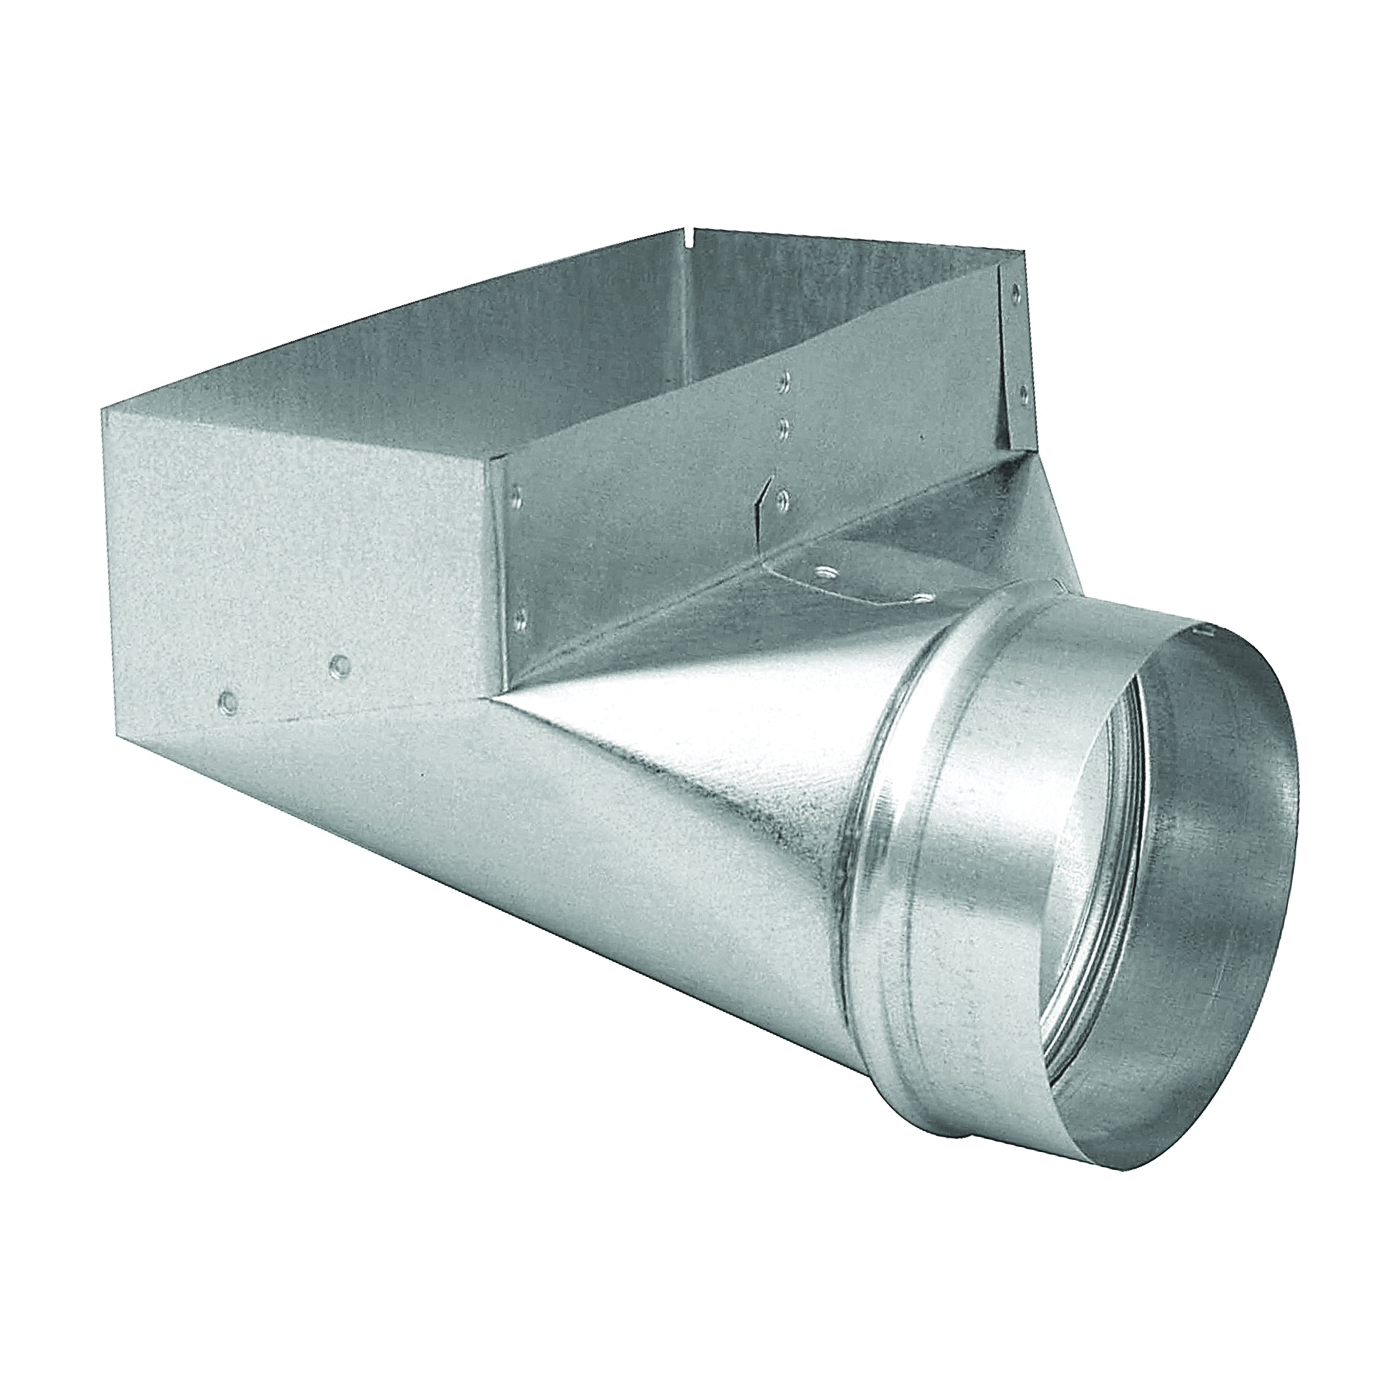 Picture of Imperial GV0614 Angle Boot, 4 in L, 10 in W, 5 in H, Steel, Galvanized